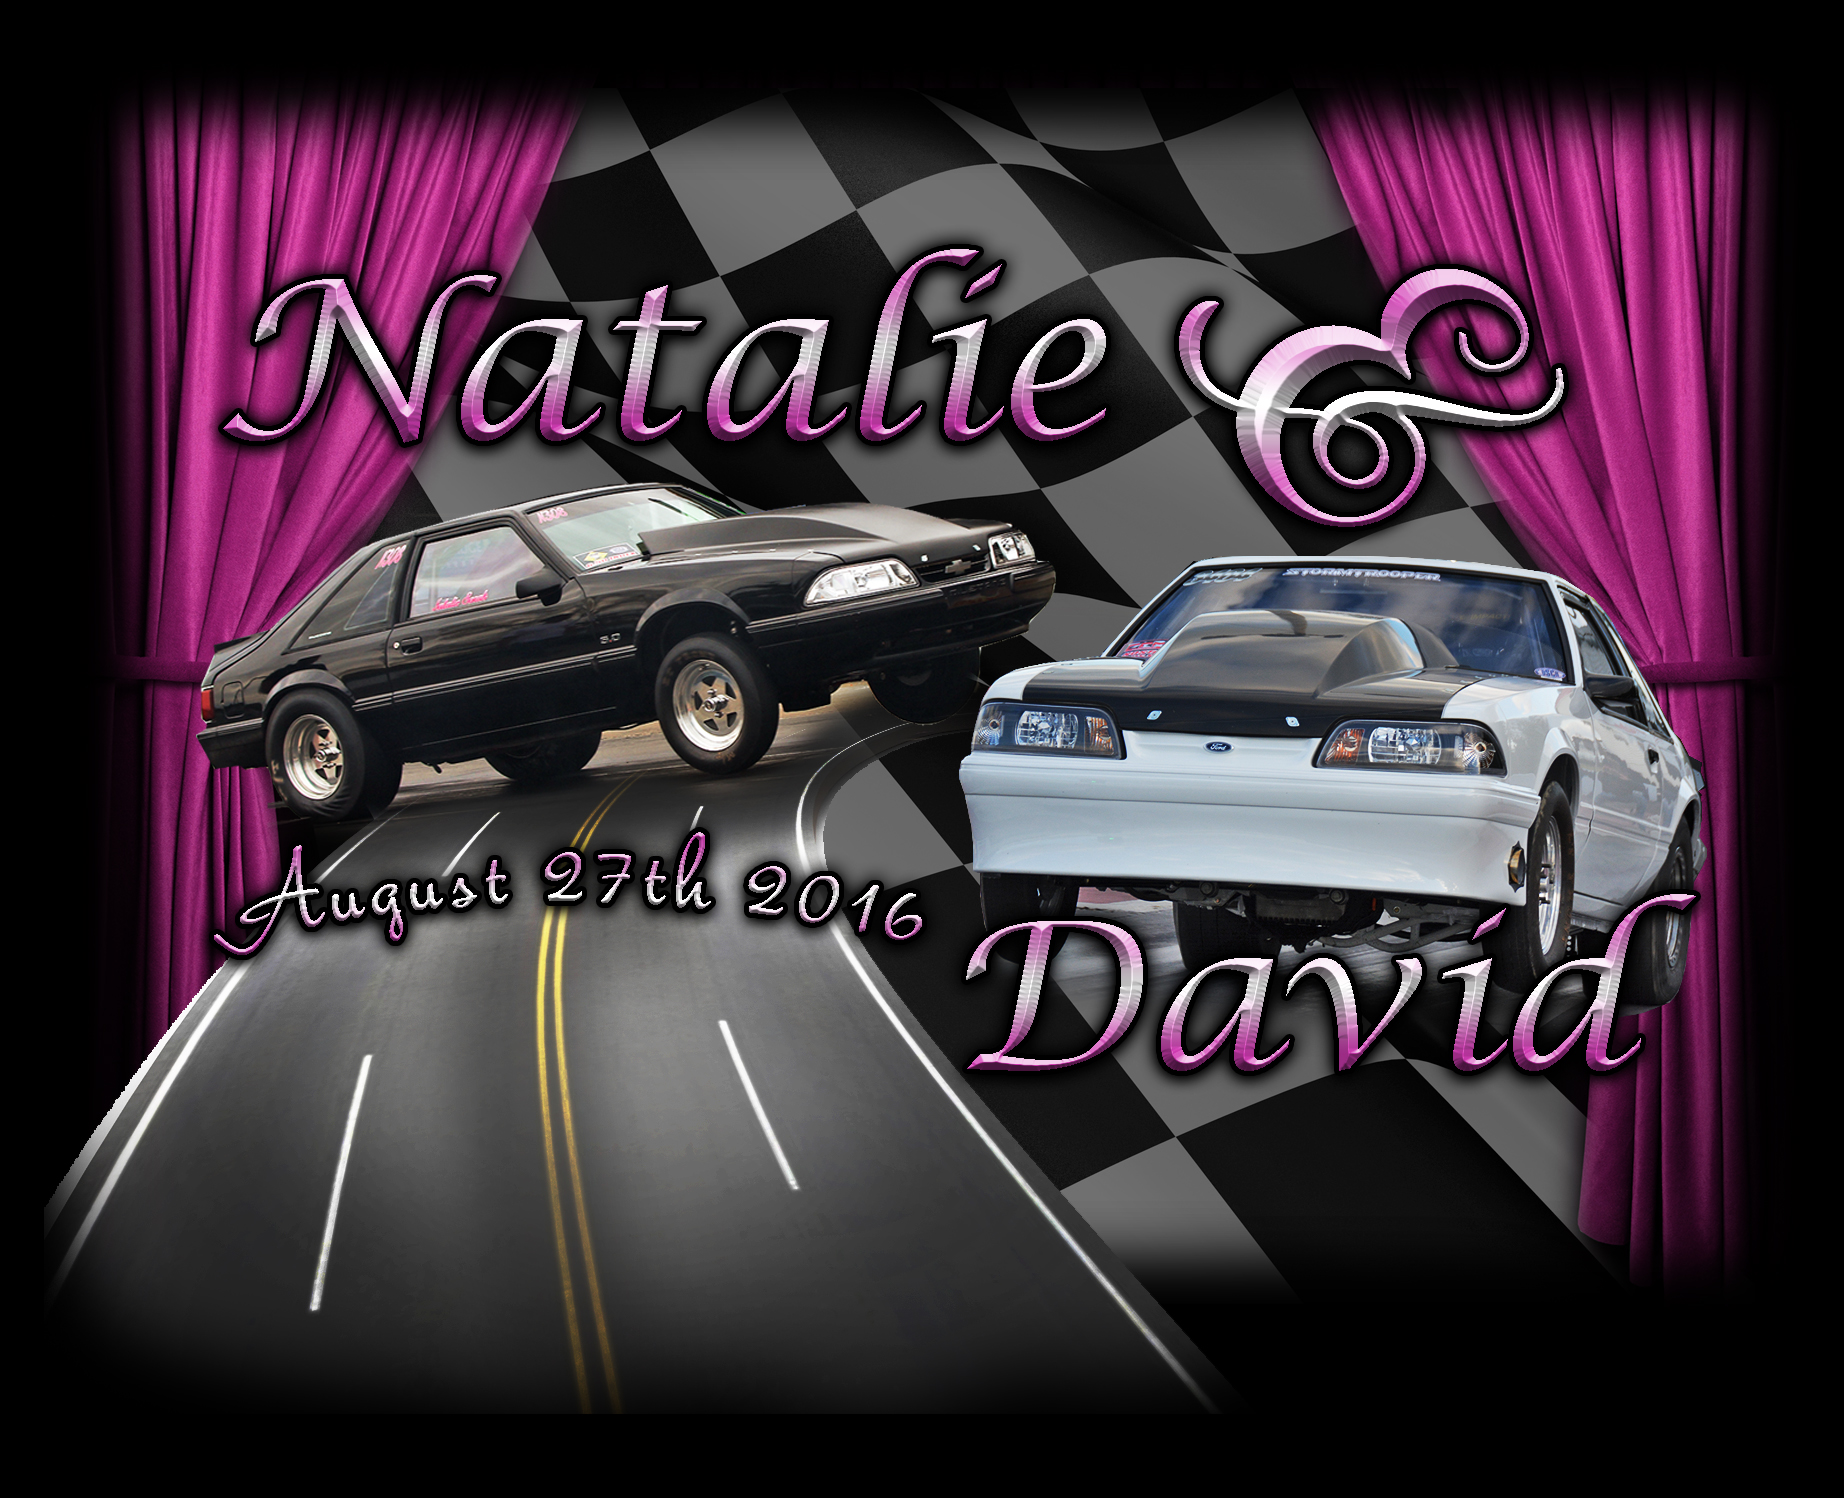 natalie and david 4 monogram.jpg